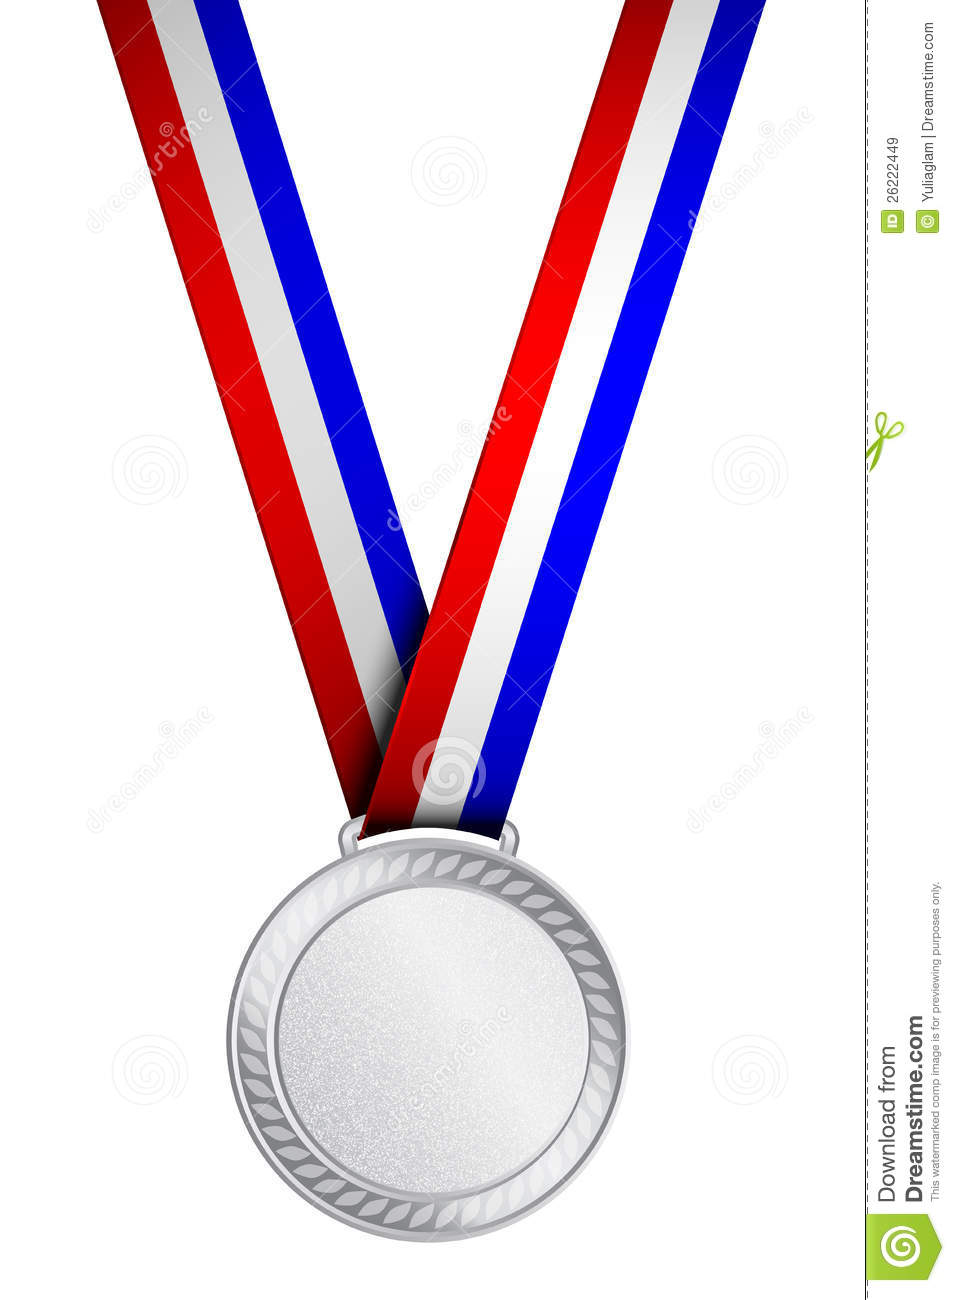 Silver medal clipart 1 » Clipart Station.